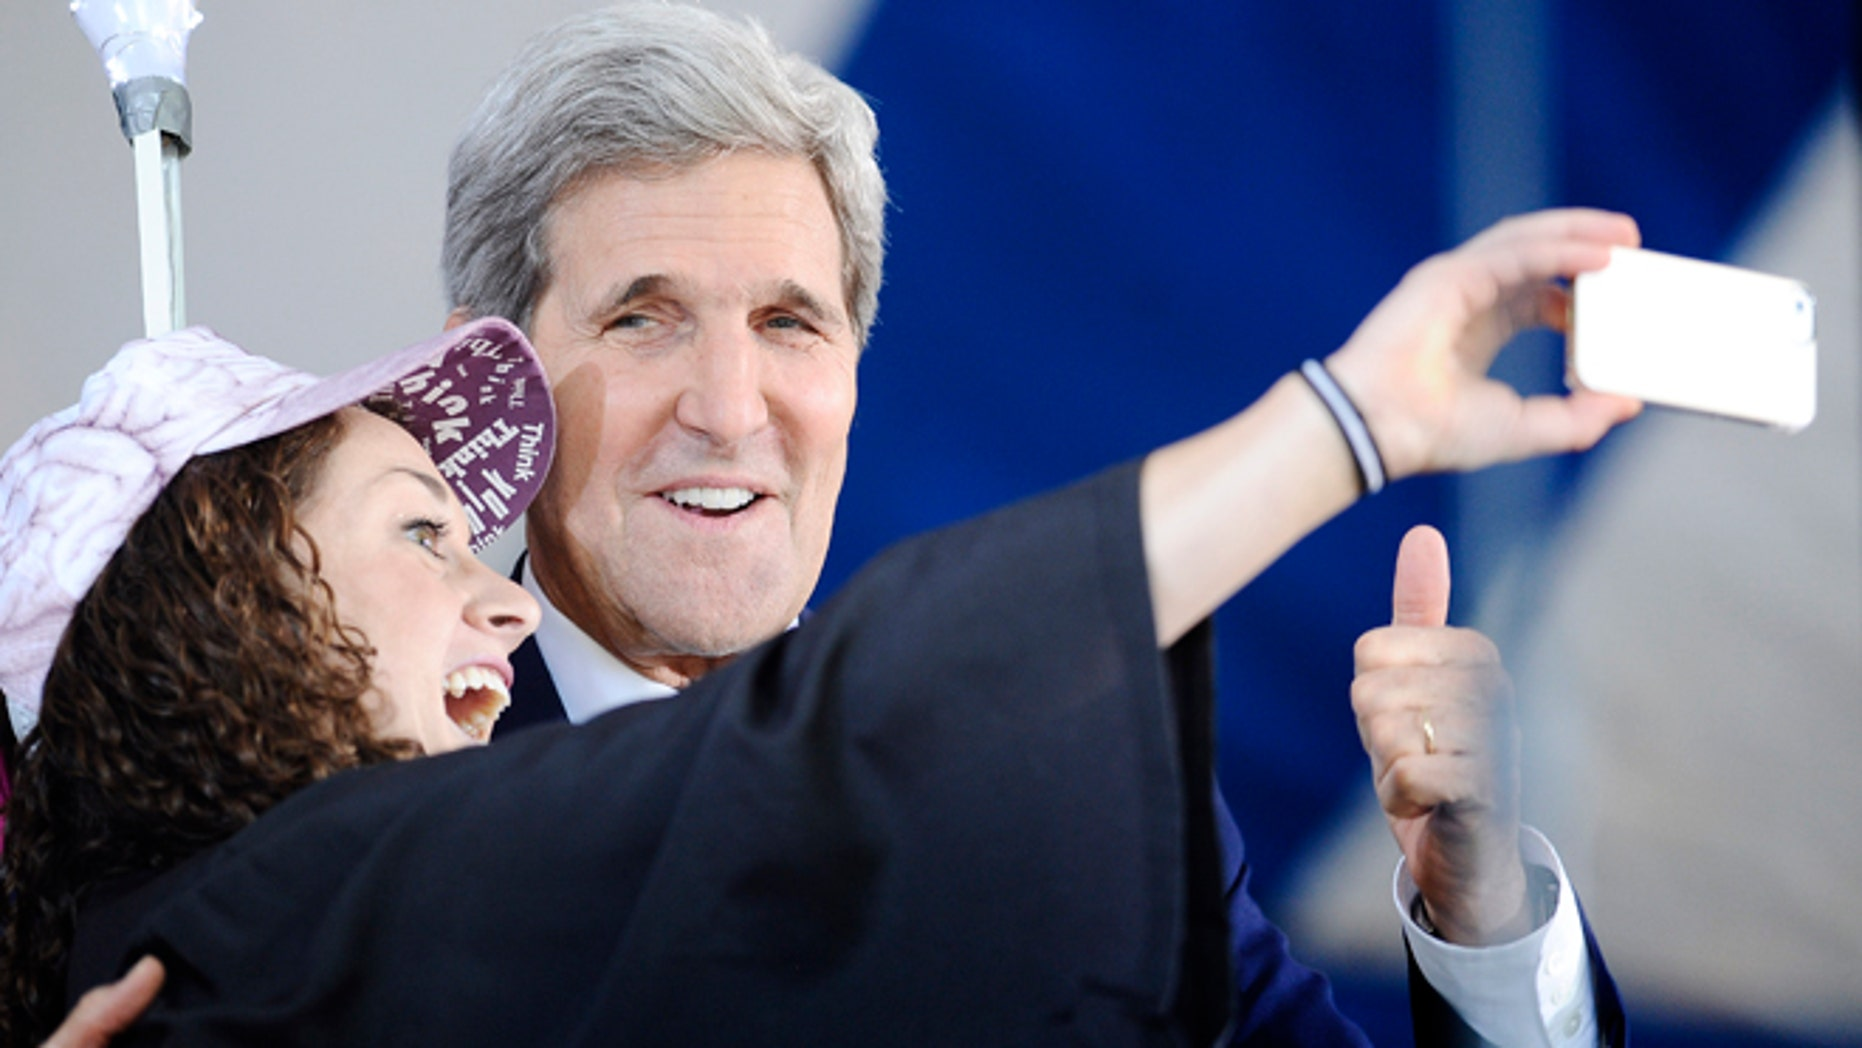 Secretary of State John Kerry, right poses for a selfie with Yale student Ariel Kirshenbaum during Class Day at Yale University, Sunday, May 18, 2014, in New Haven, Conn. (AP Photo/Jessica Hill)